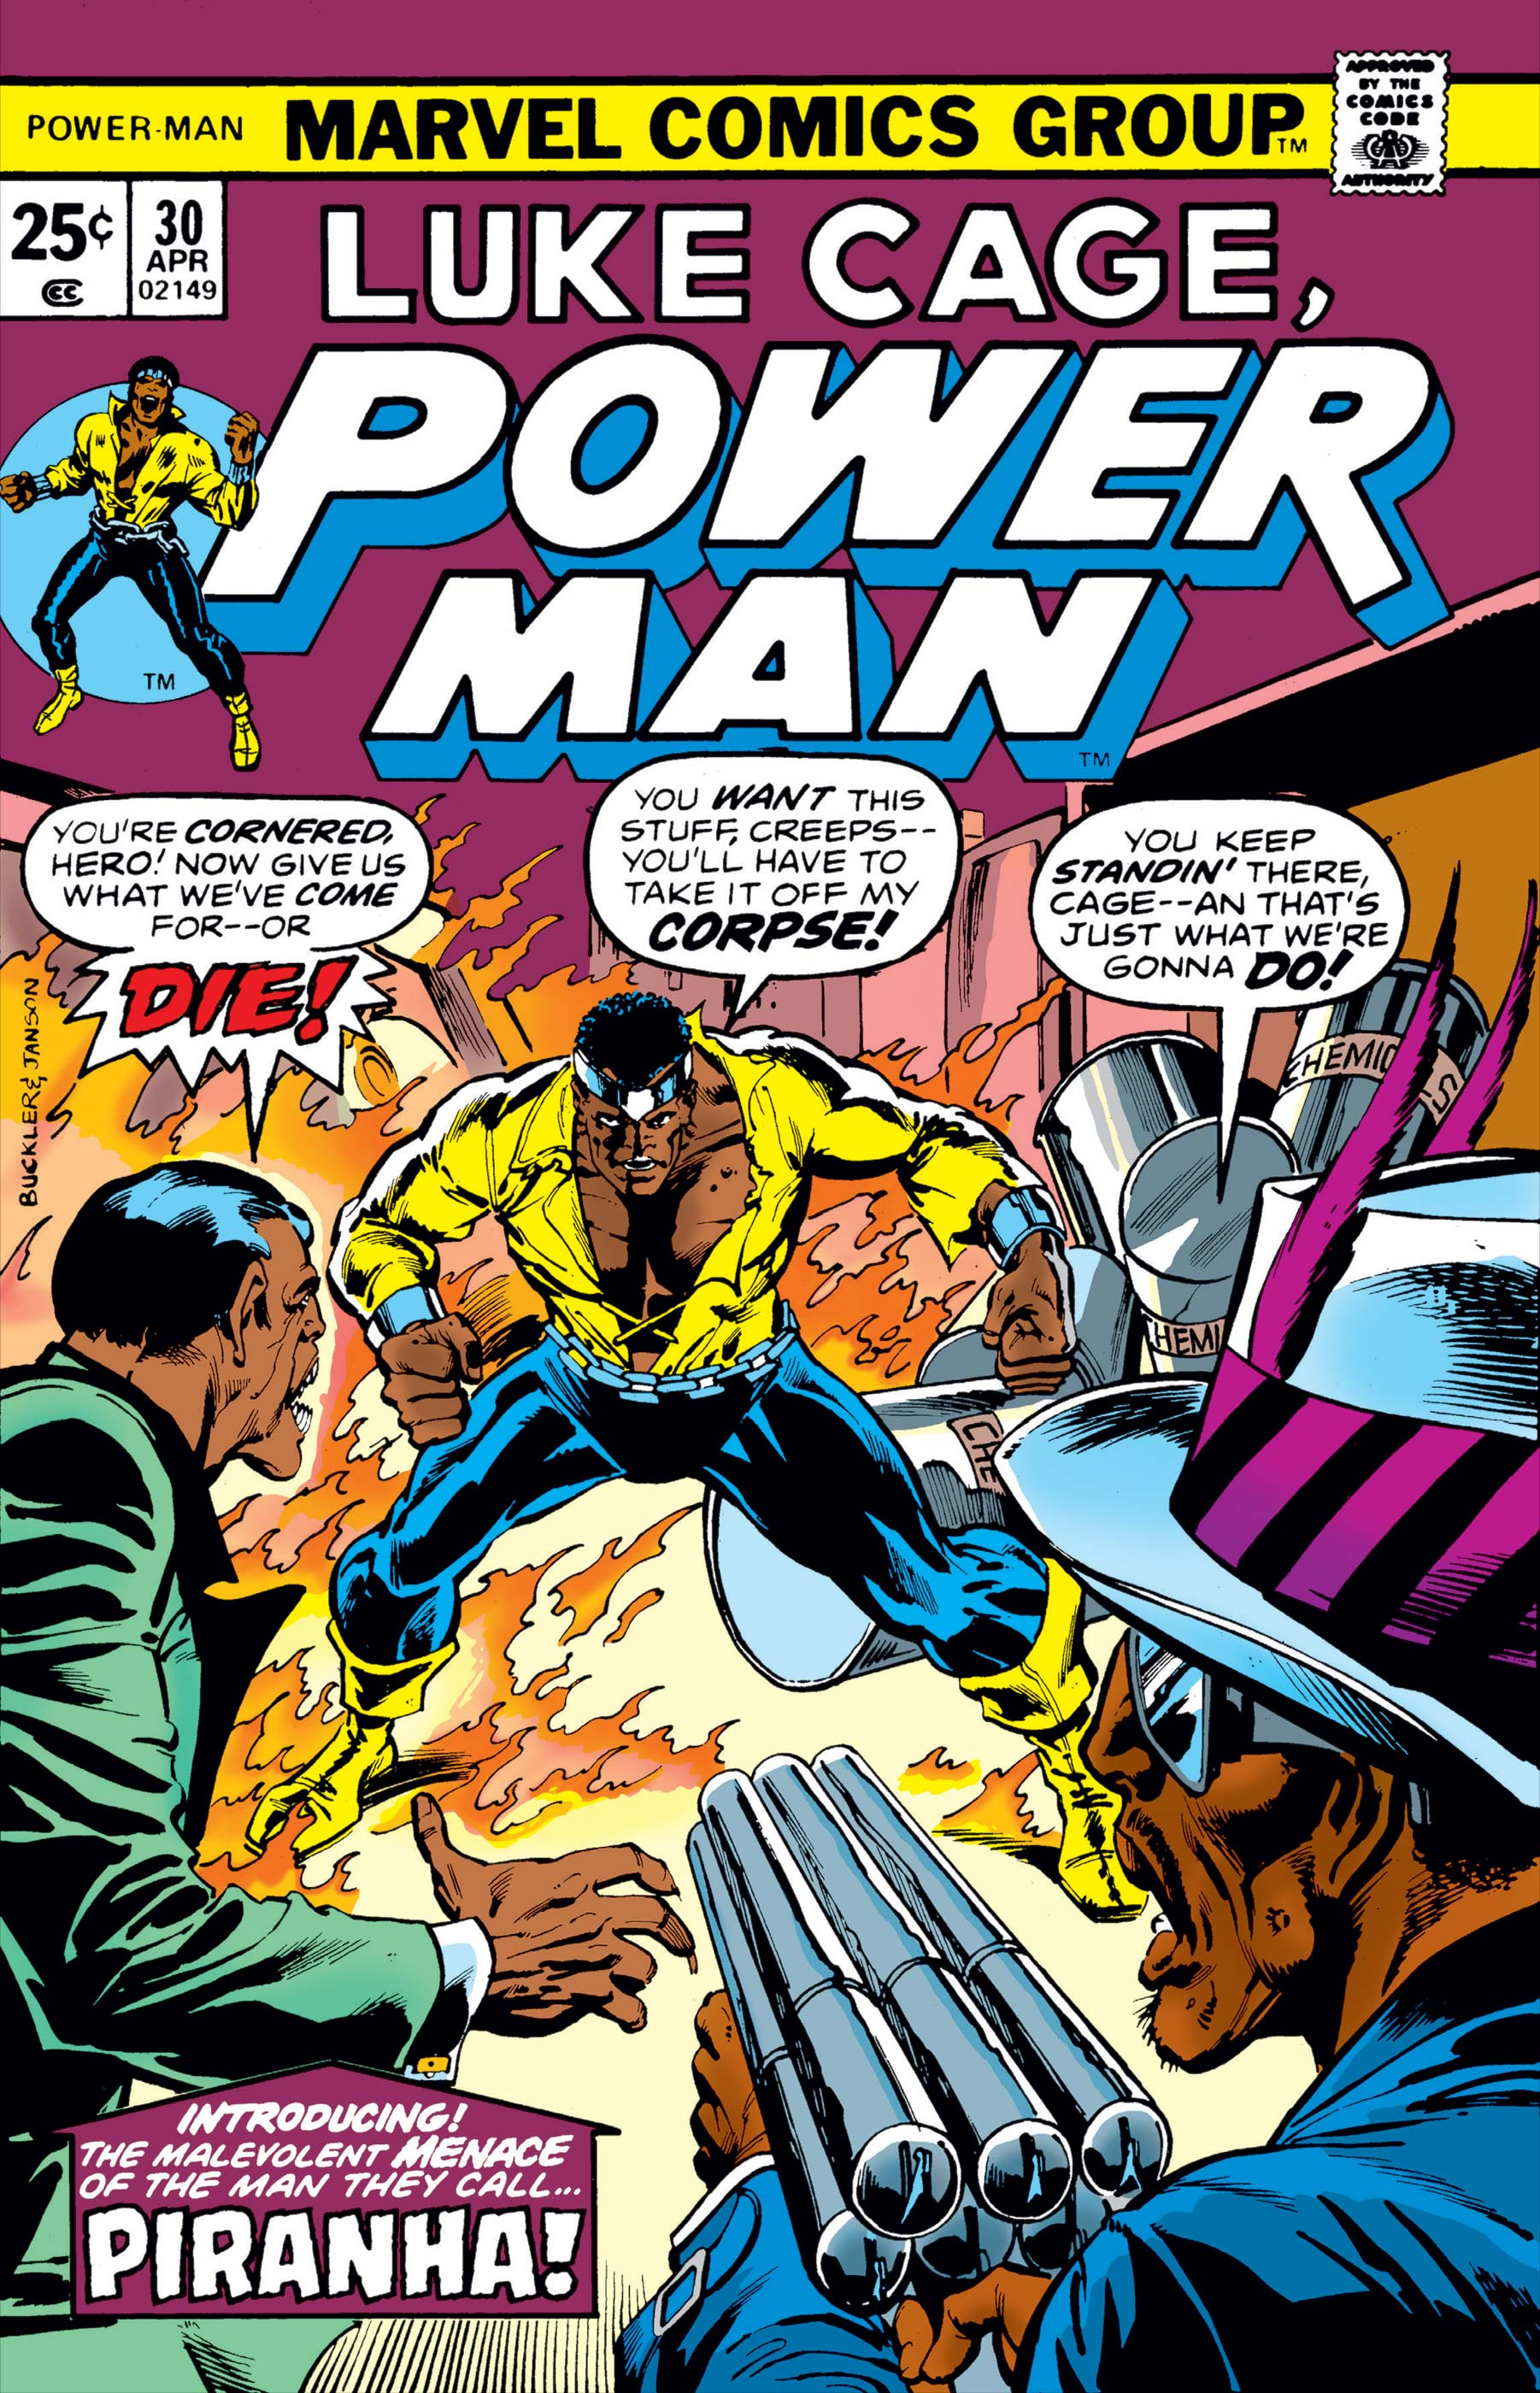 Power Man (1974) #30